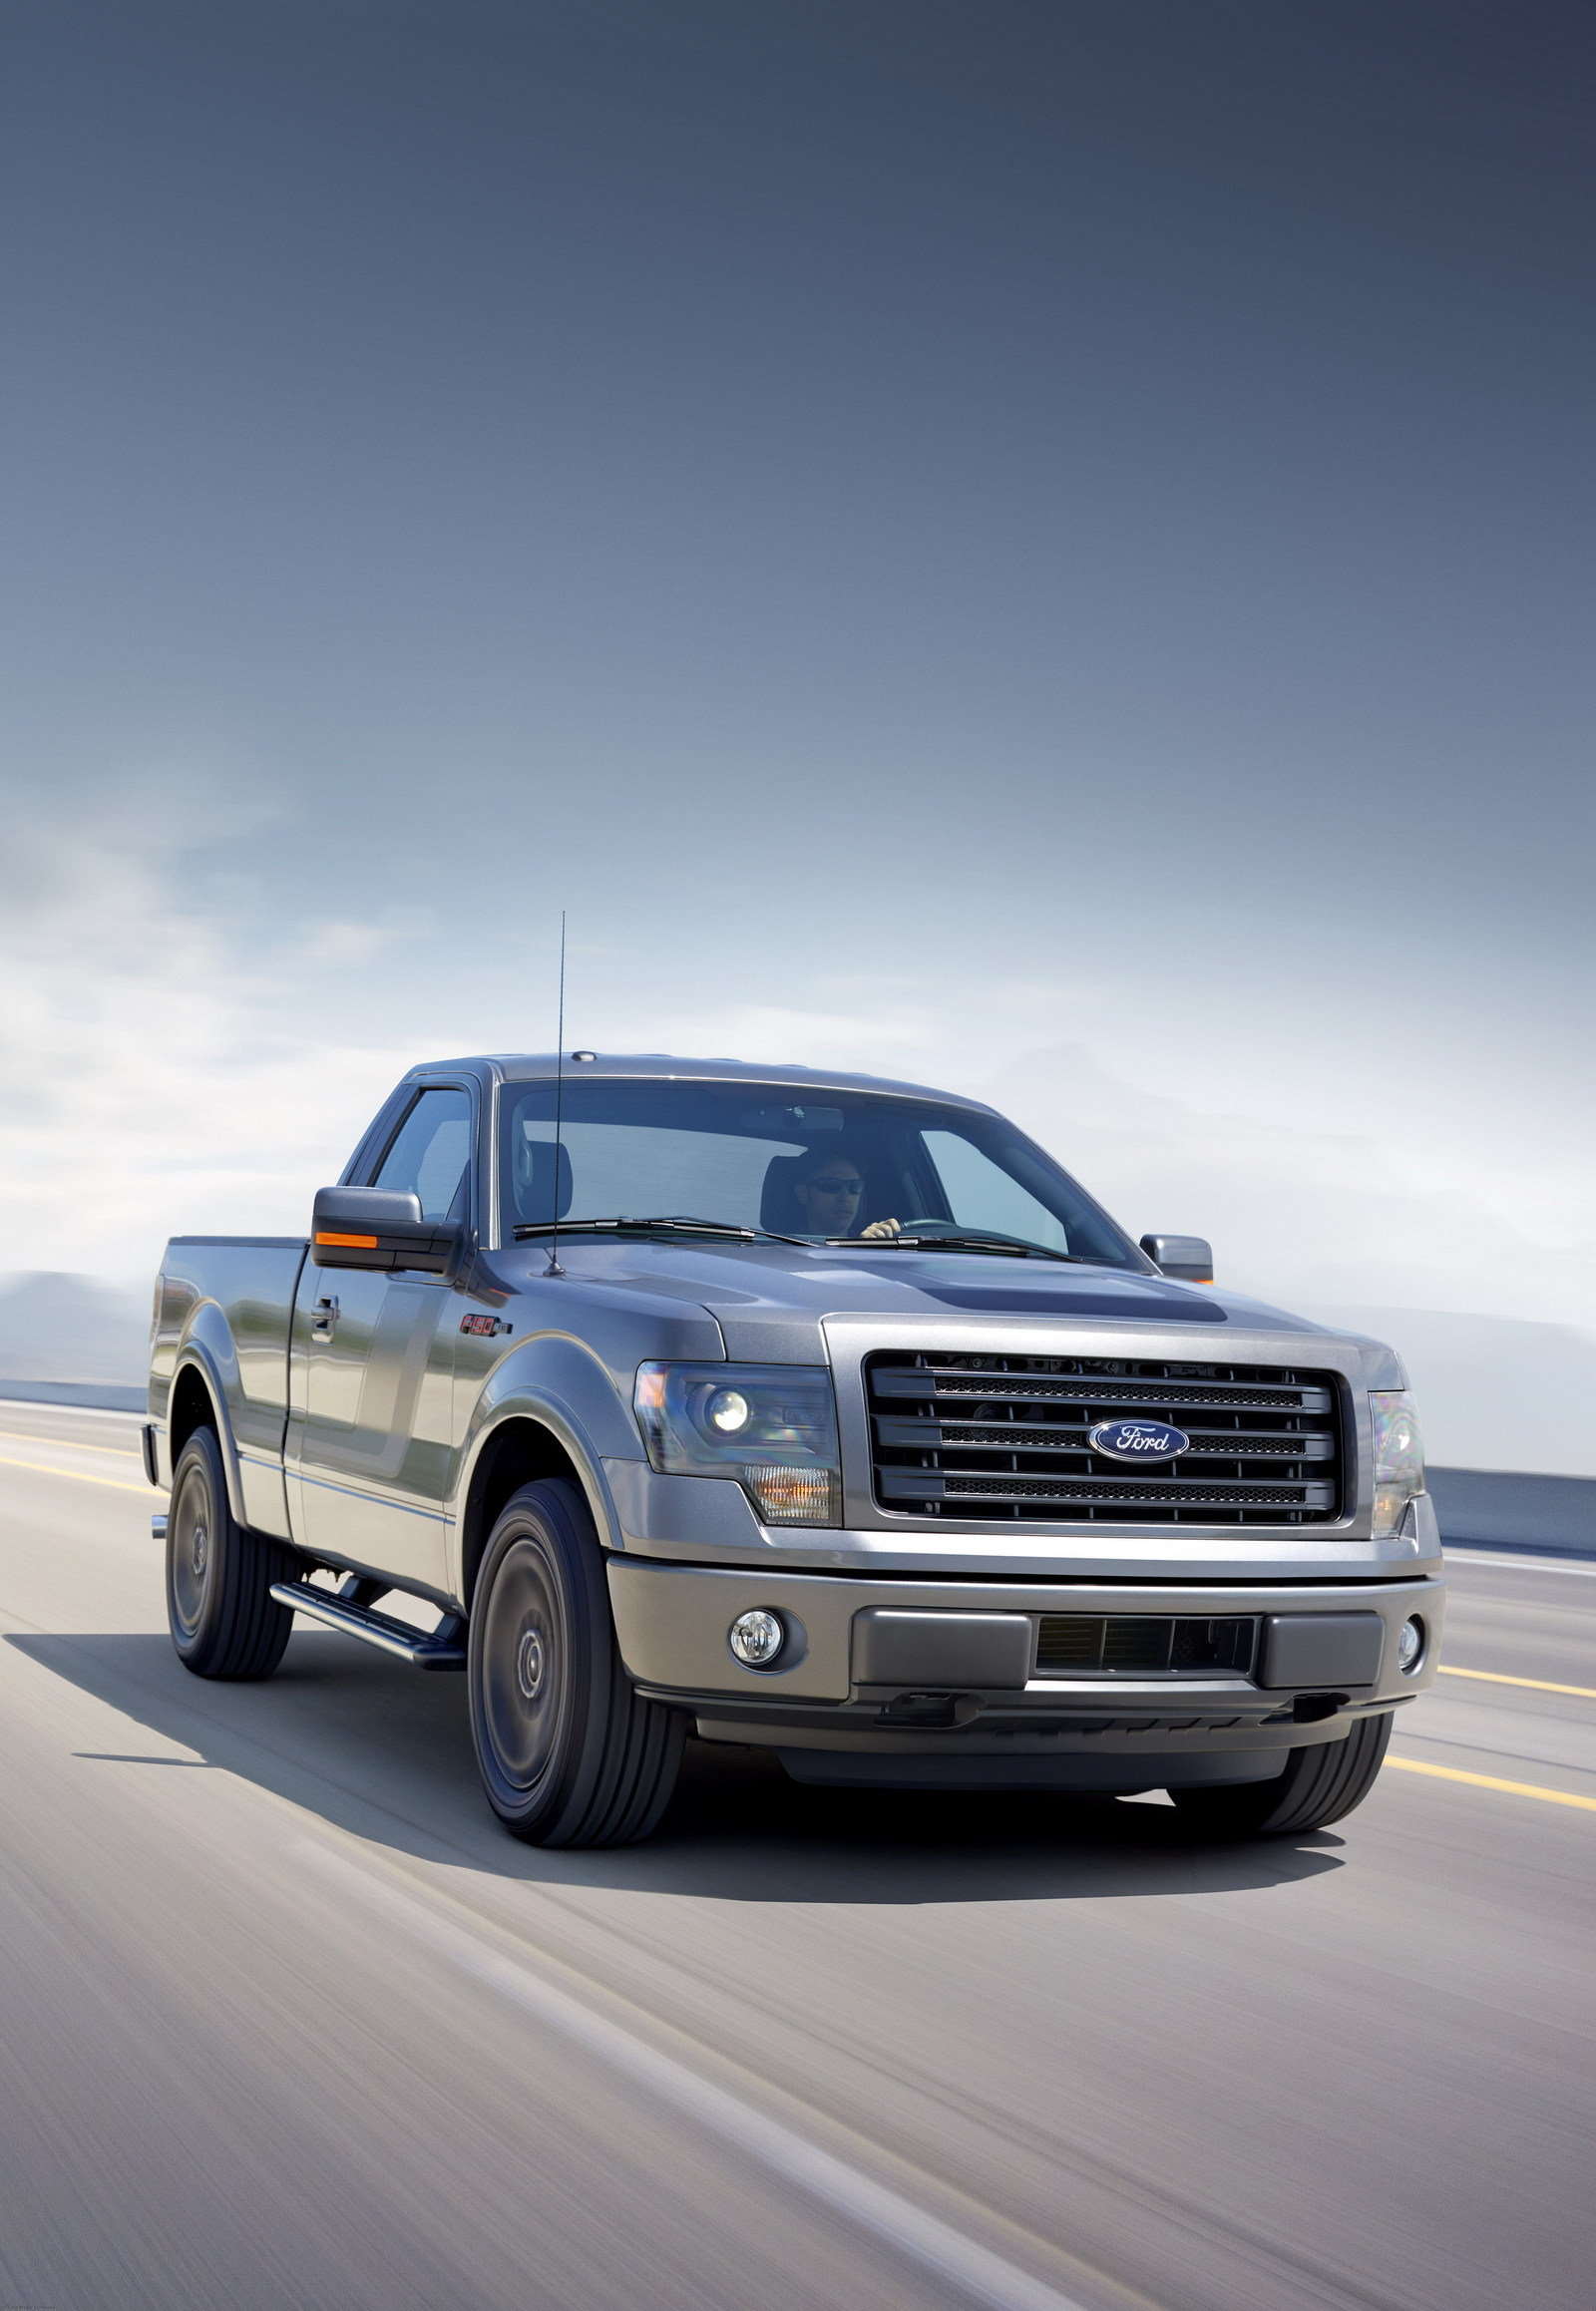 2014 ford f 150 tremor picture 512900 car review top speed. Black Bedroom Furniture Sets. Home Design Ideas